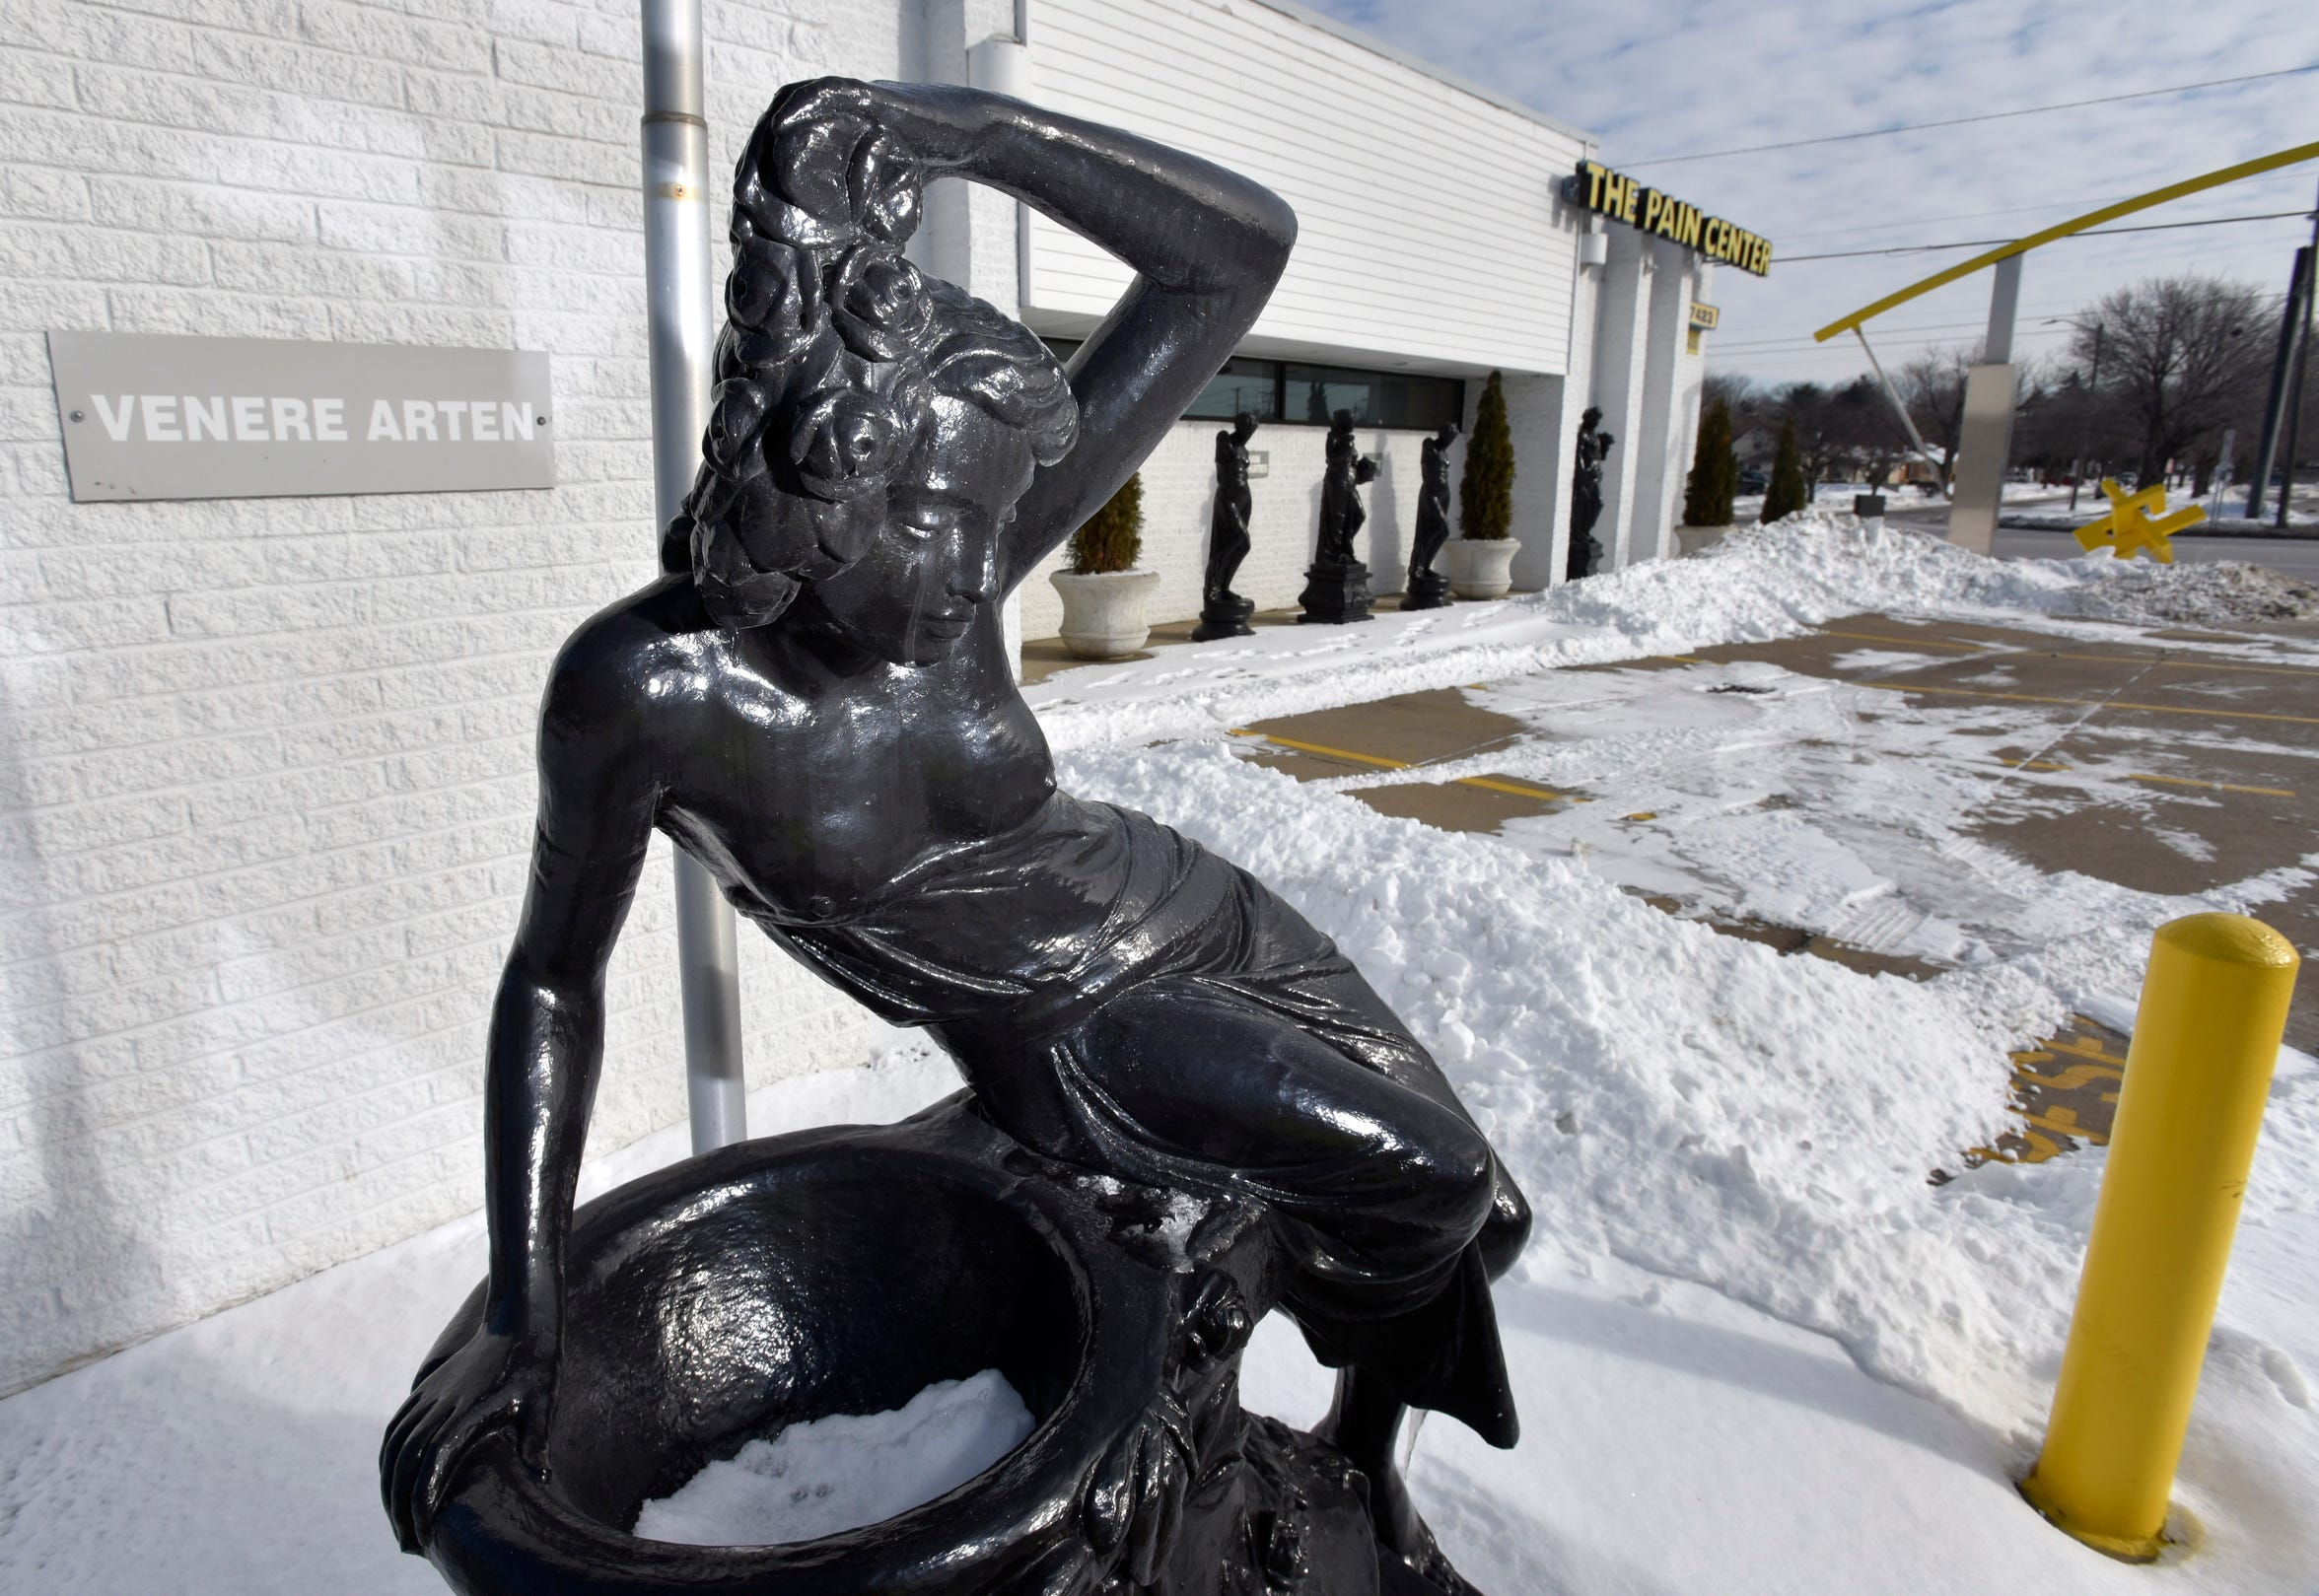 A statue of Greek goddess Venere Arten is displayed with other goddess statue outside The Pain Center, a closed business in Warren.  The Warren health clinic, with Dr. Rajendra Bothra, of Bloomfield Hills, and a five-member medical team, was shut down by federal agents for operating an alleged multi-million dollar healthcare fraud, including, an illicit opioid scheme.